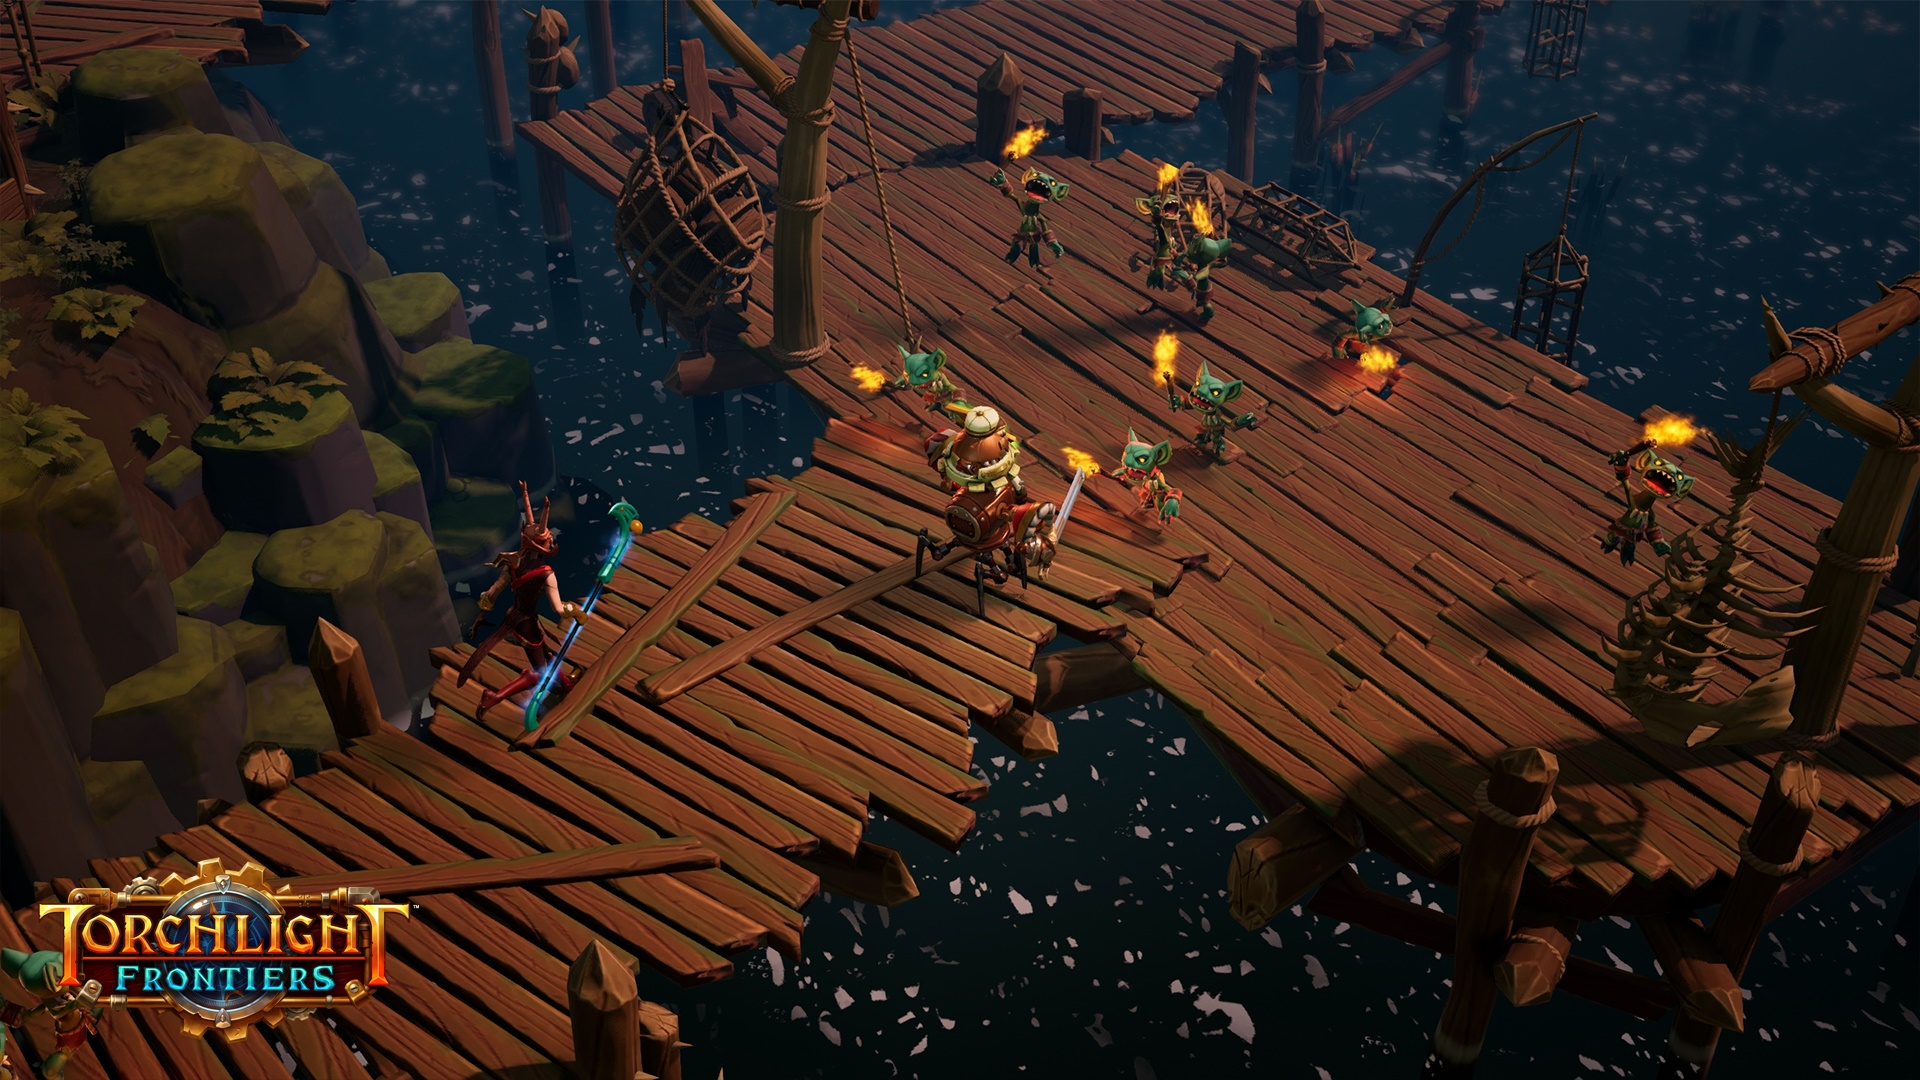 Torchlight Frontiers Forged Gameplay Screenshot